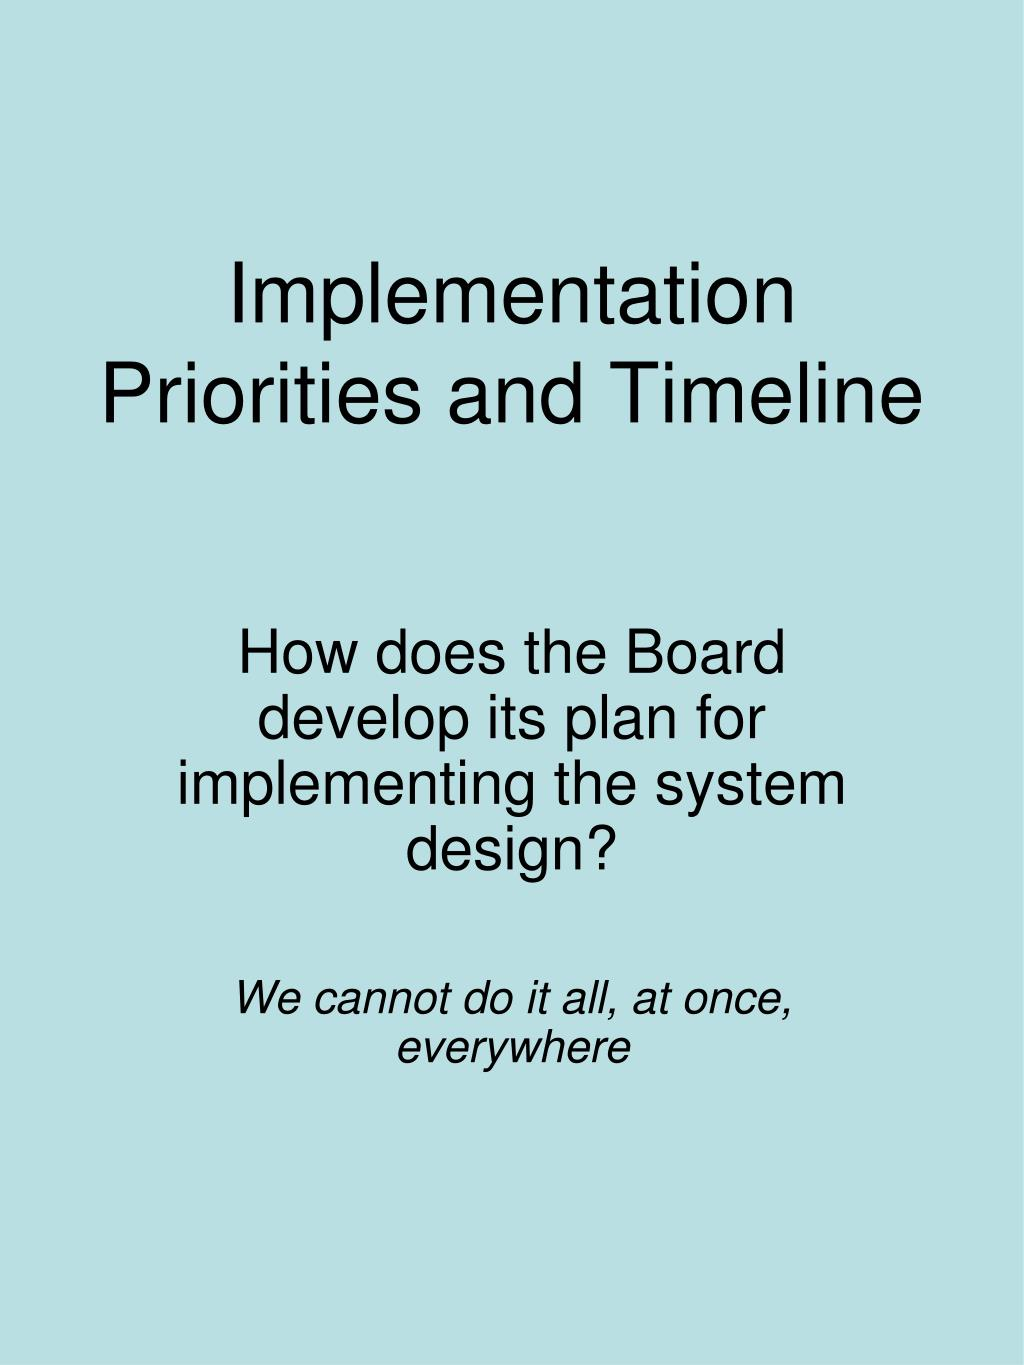 Implementation Priorities and Timeline